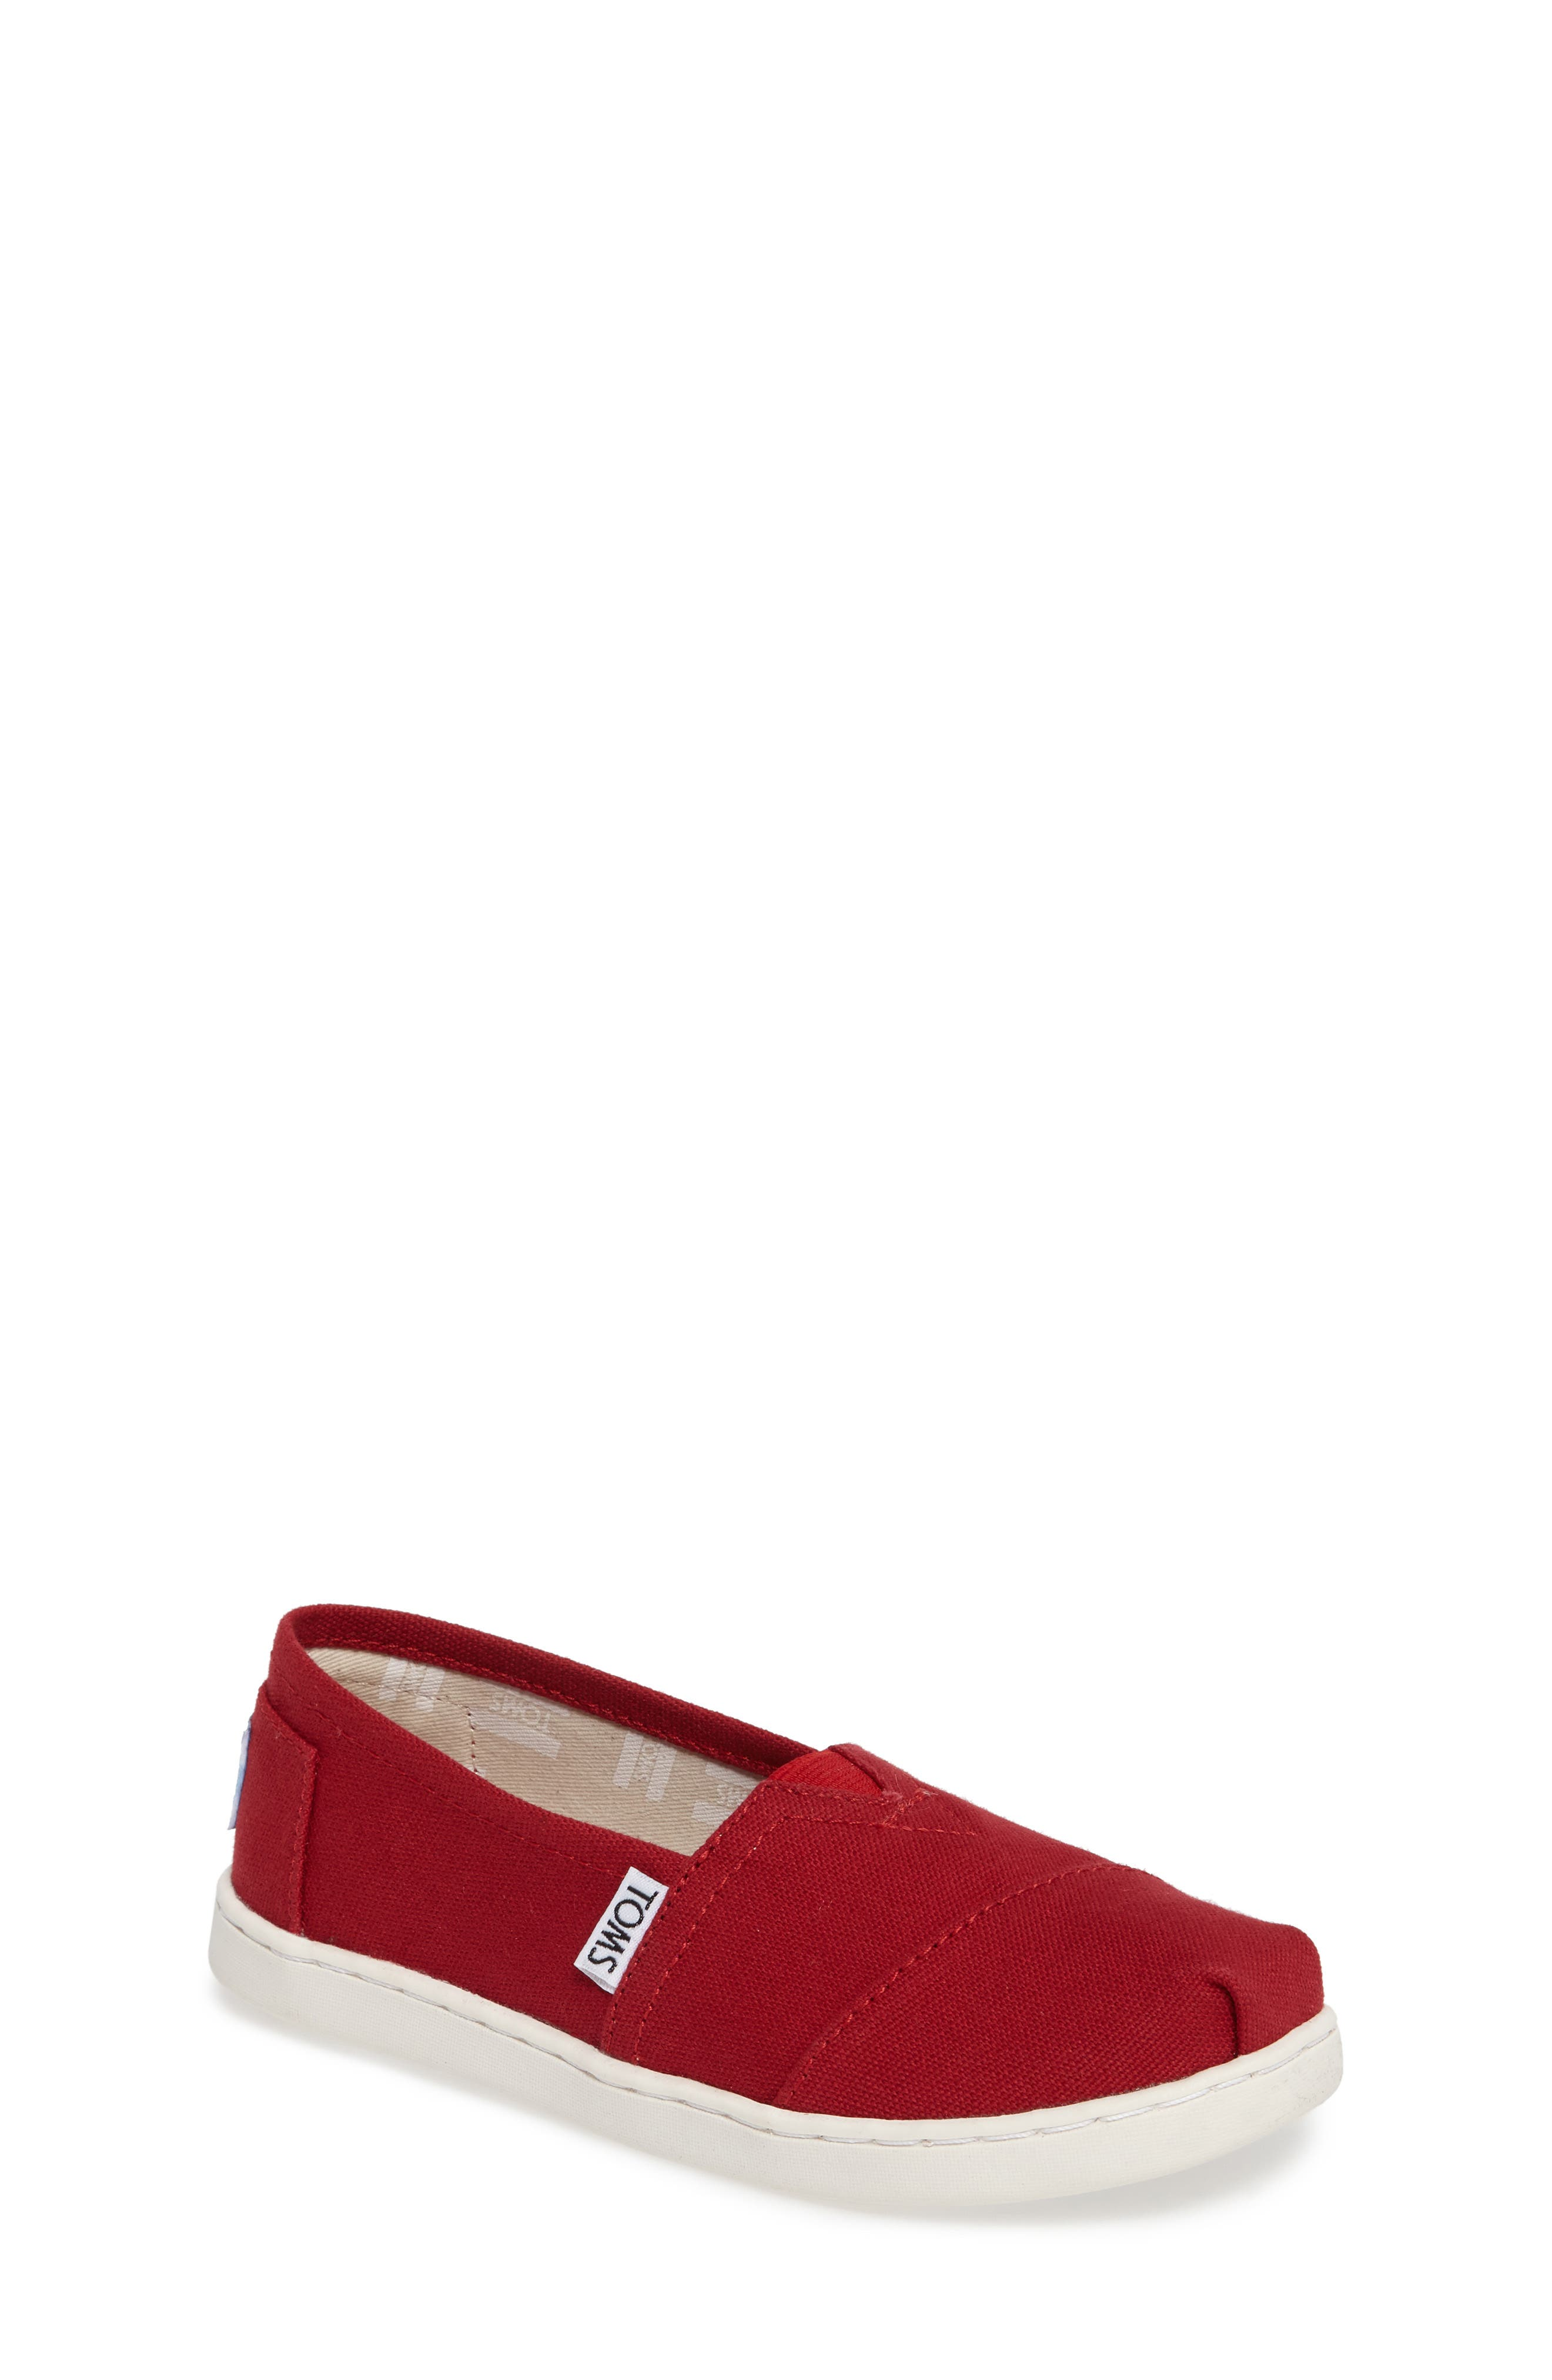 38f29eacc77 Kid s Toms 2.0 Classic Alpargata Slip-On- Red